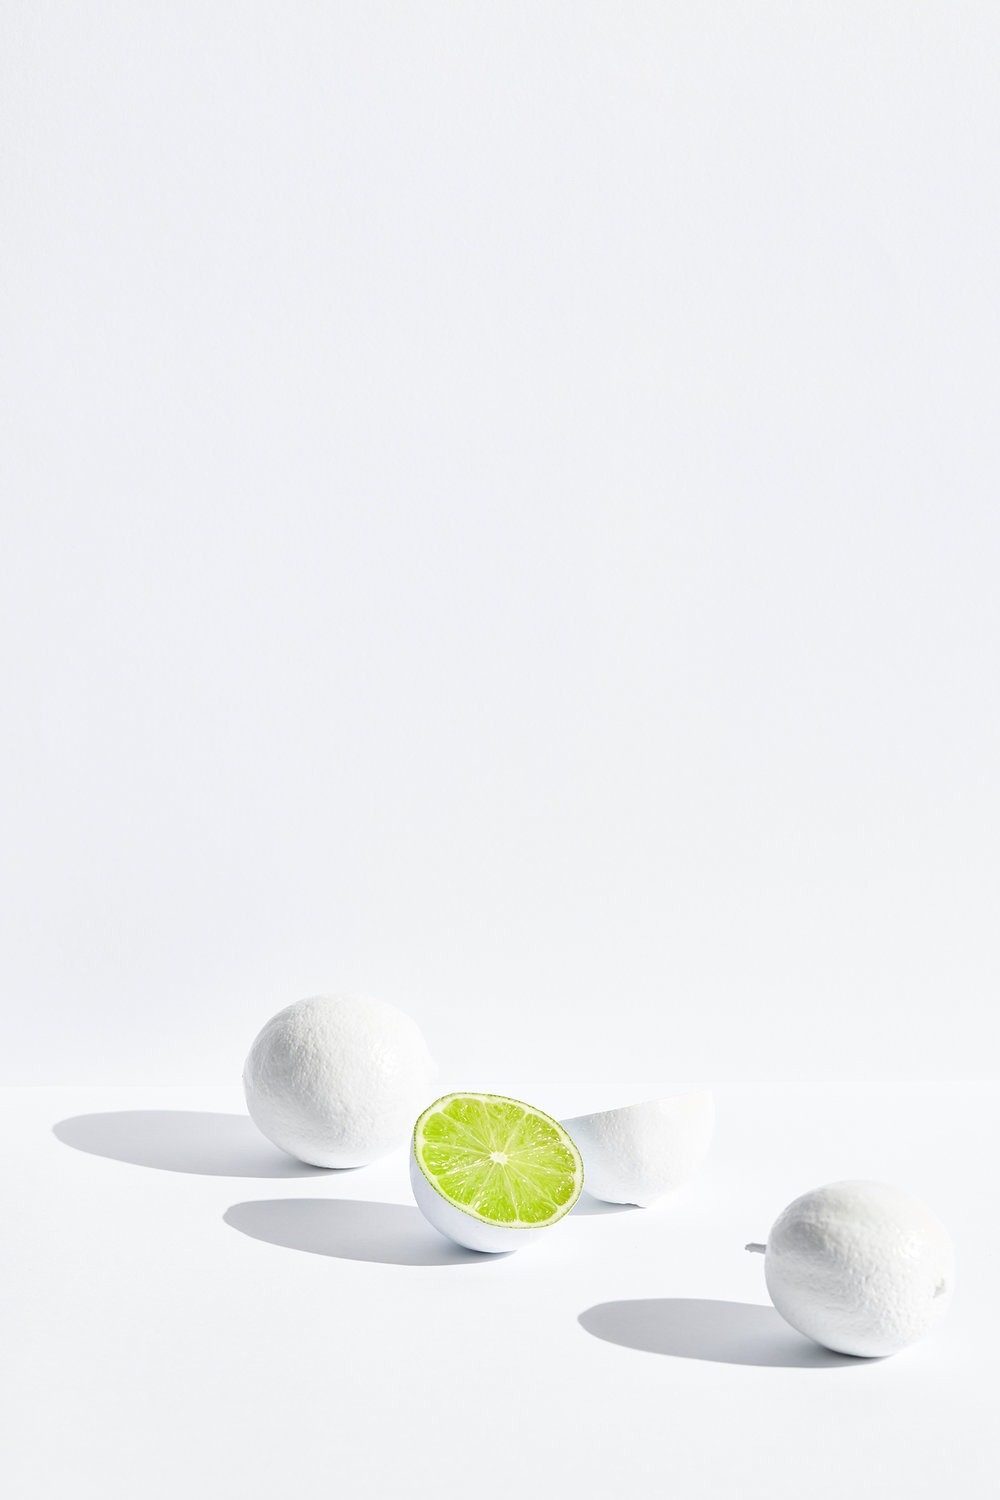 LIMES shot by Sydney advertising, Interior, food and lifestyle photographer Benito Martin